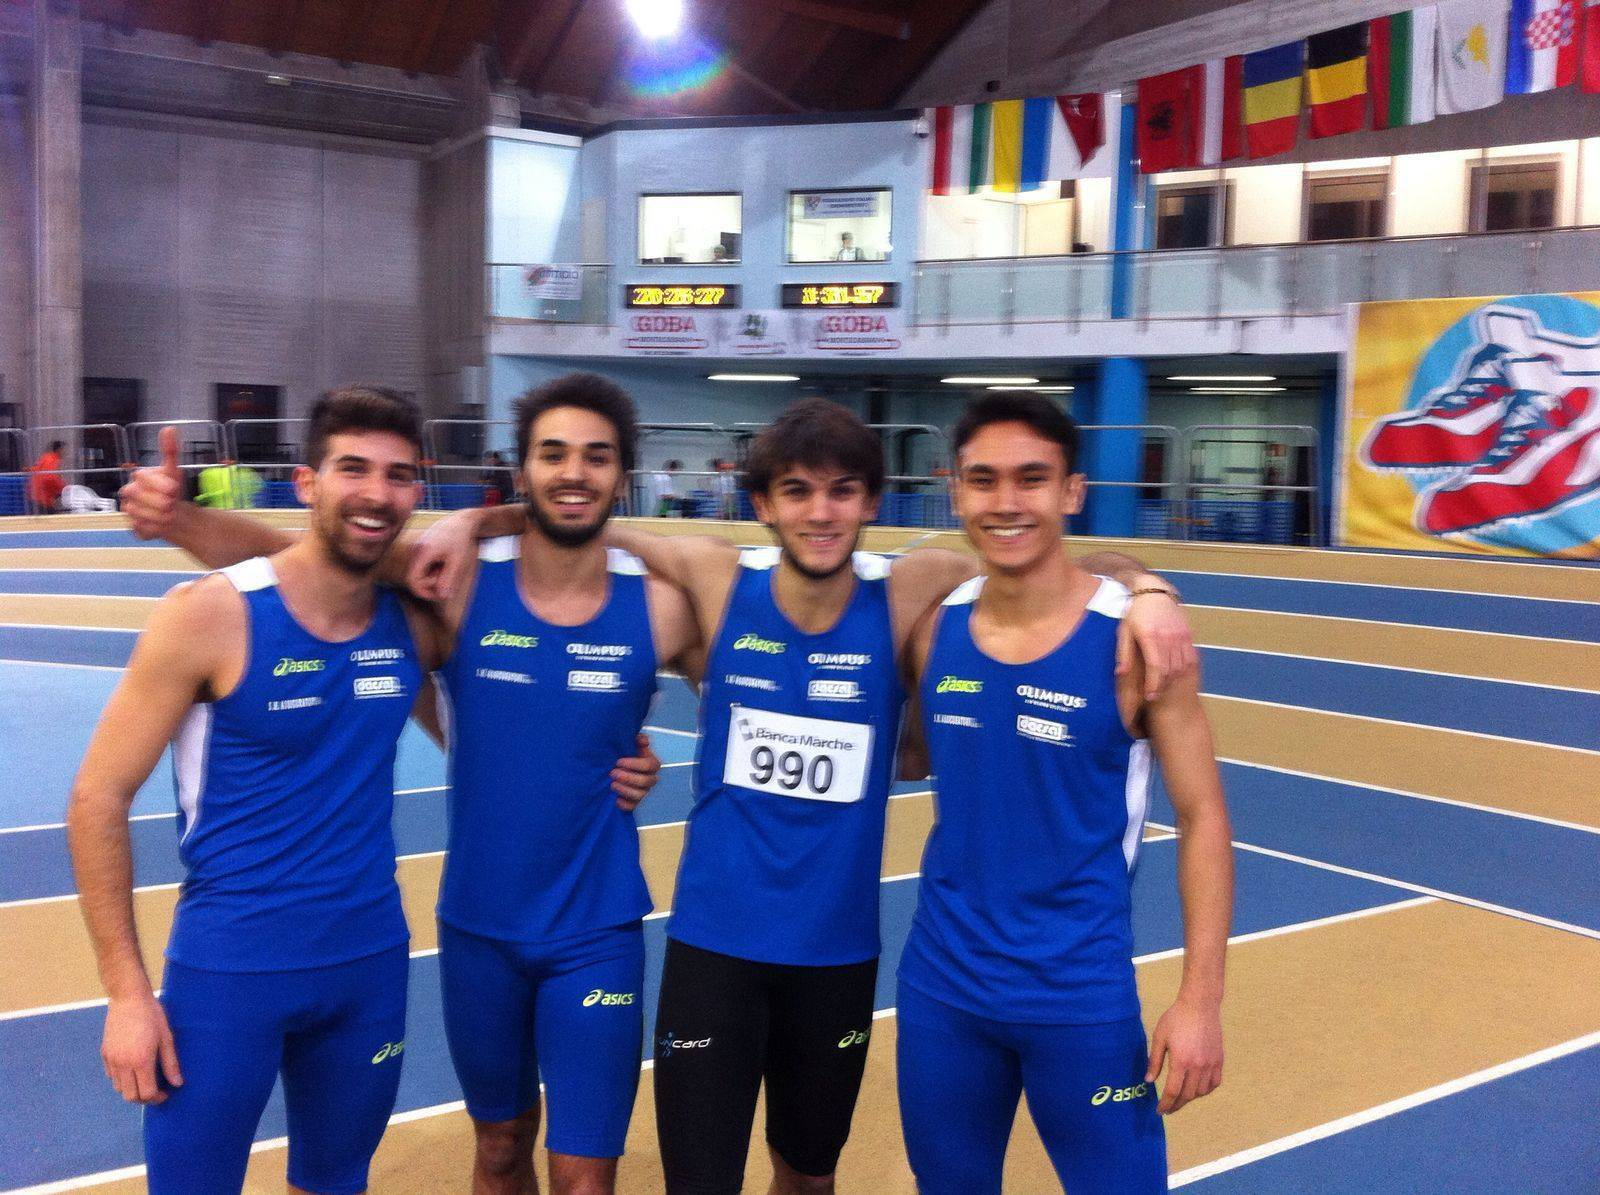 La Staffetta 4x200 dell'Olimpus San Marino Atletica in evidenza ai Campionati Italiani Assoluti Indoor